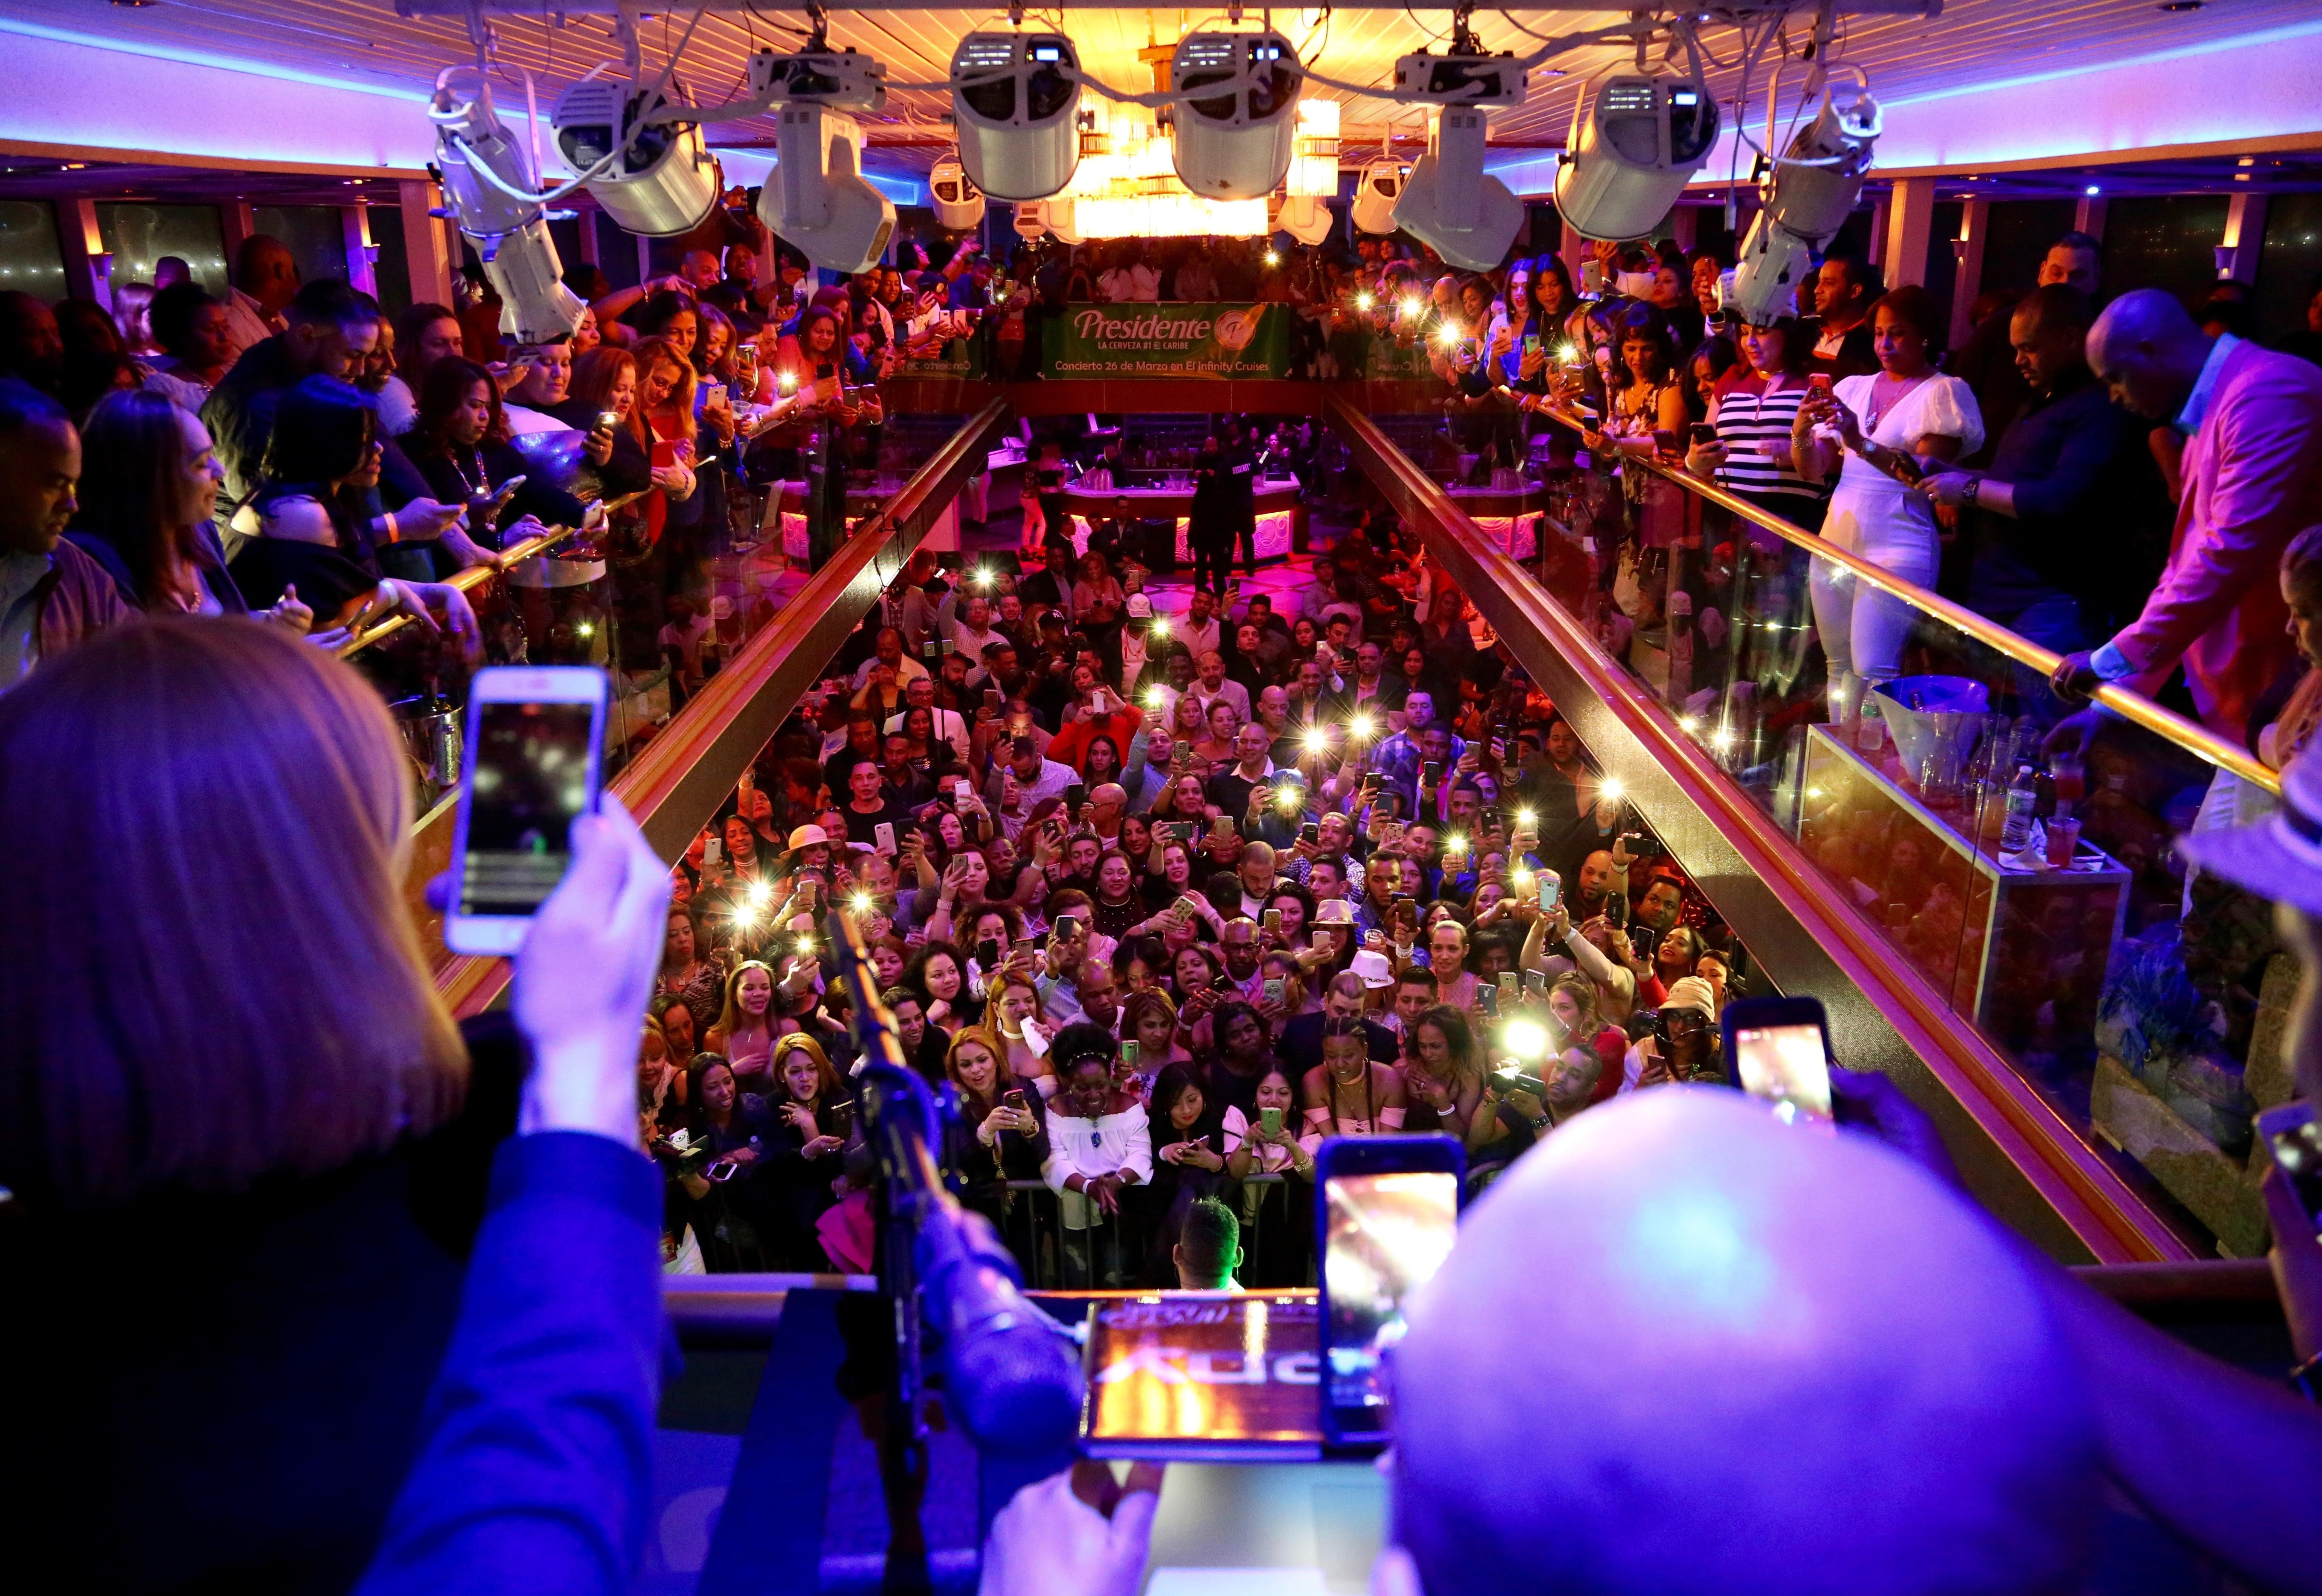 Rock The Yacht Halloween 2020 Nyc Party Cruise NYC | Boat Party with Rock the Yacht! | Hornblower